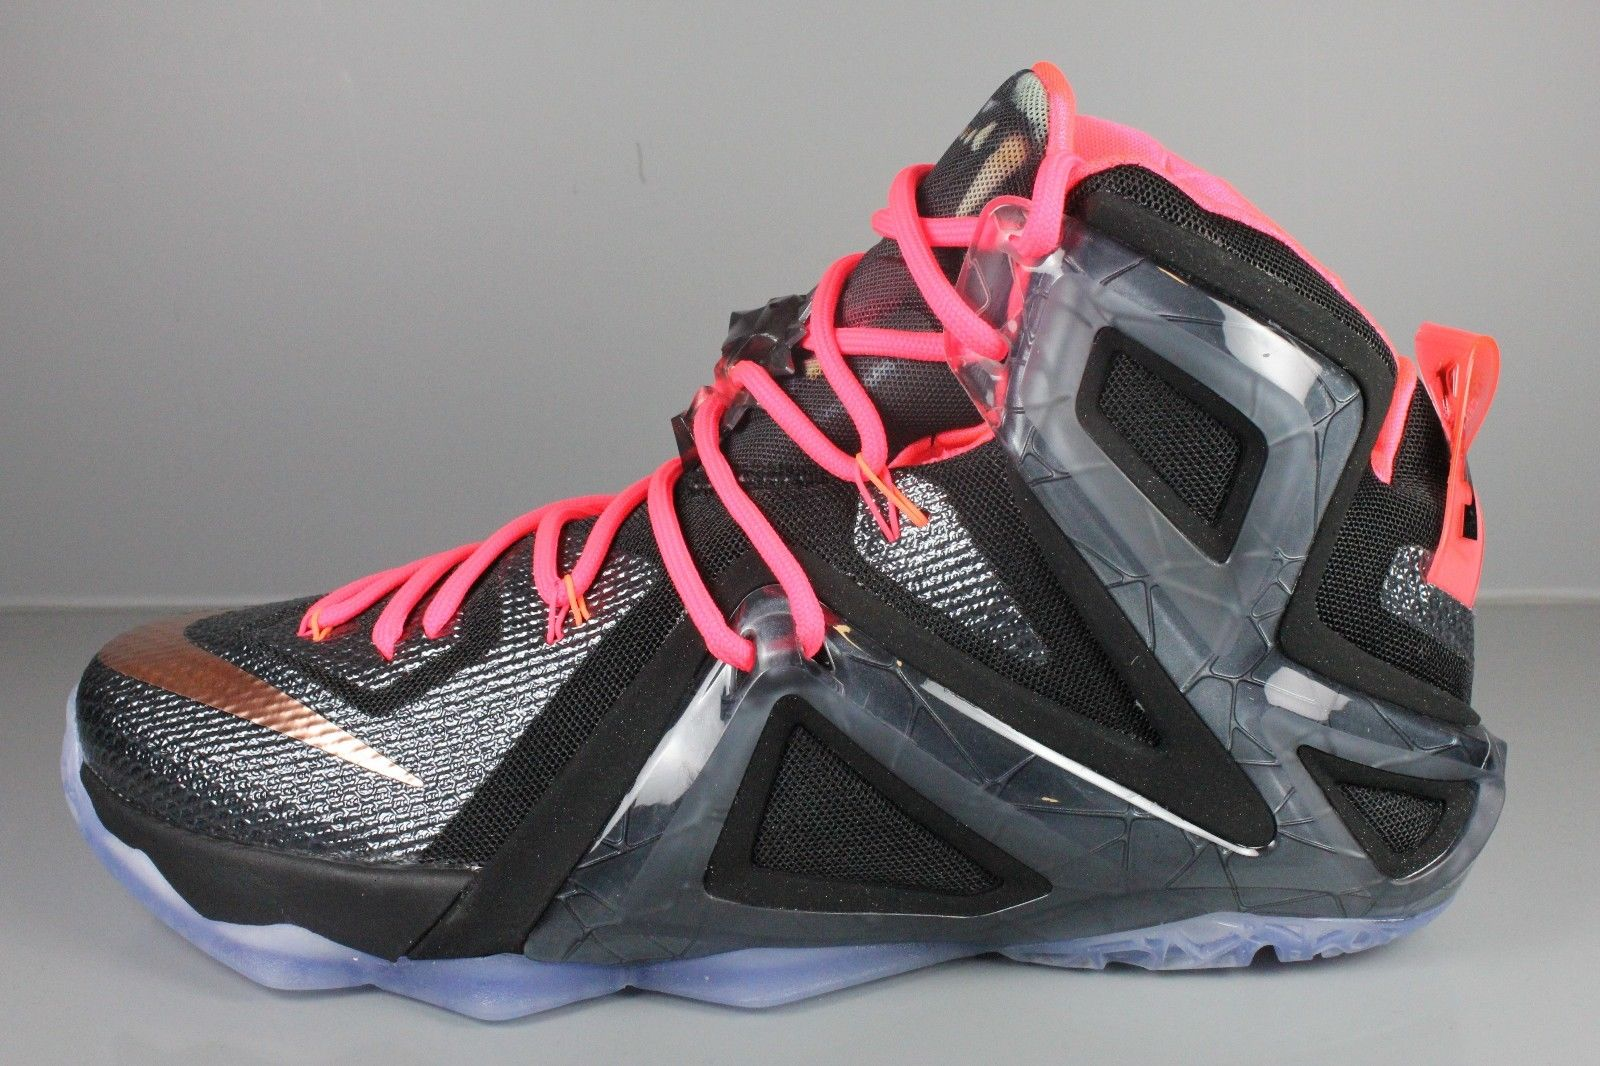 brand new 358c1 bd1bf Will LeBron James Ever Wear This Nike LeBron 12 Elite ...